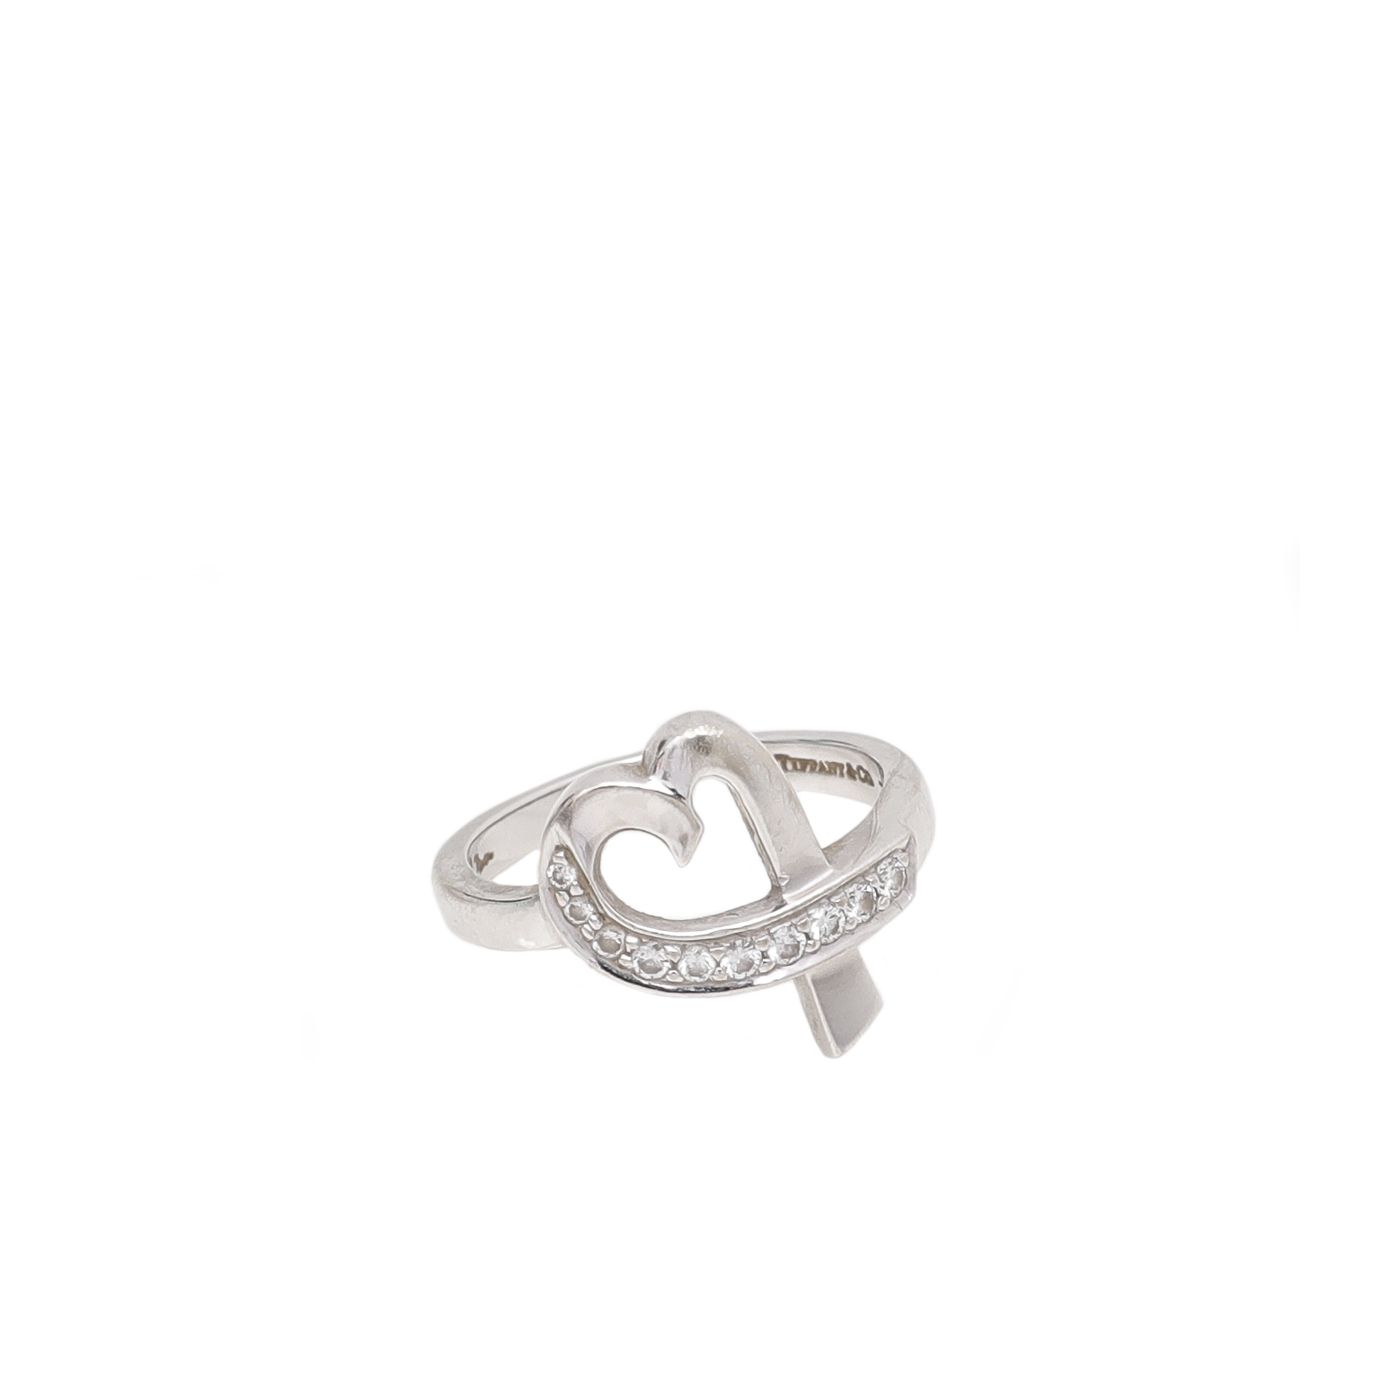 Tiffany & Co 18K White Gold Diamond Picasso Loving Heart Ring